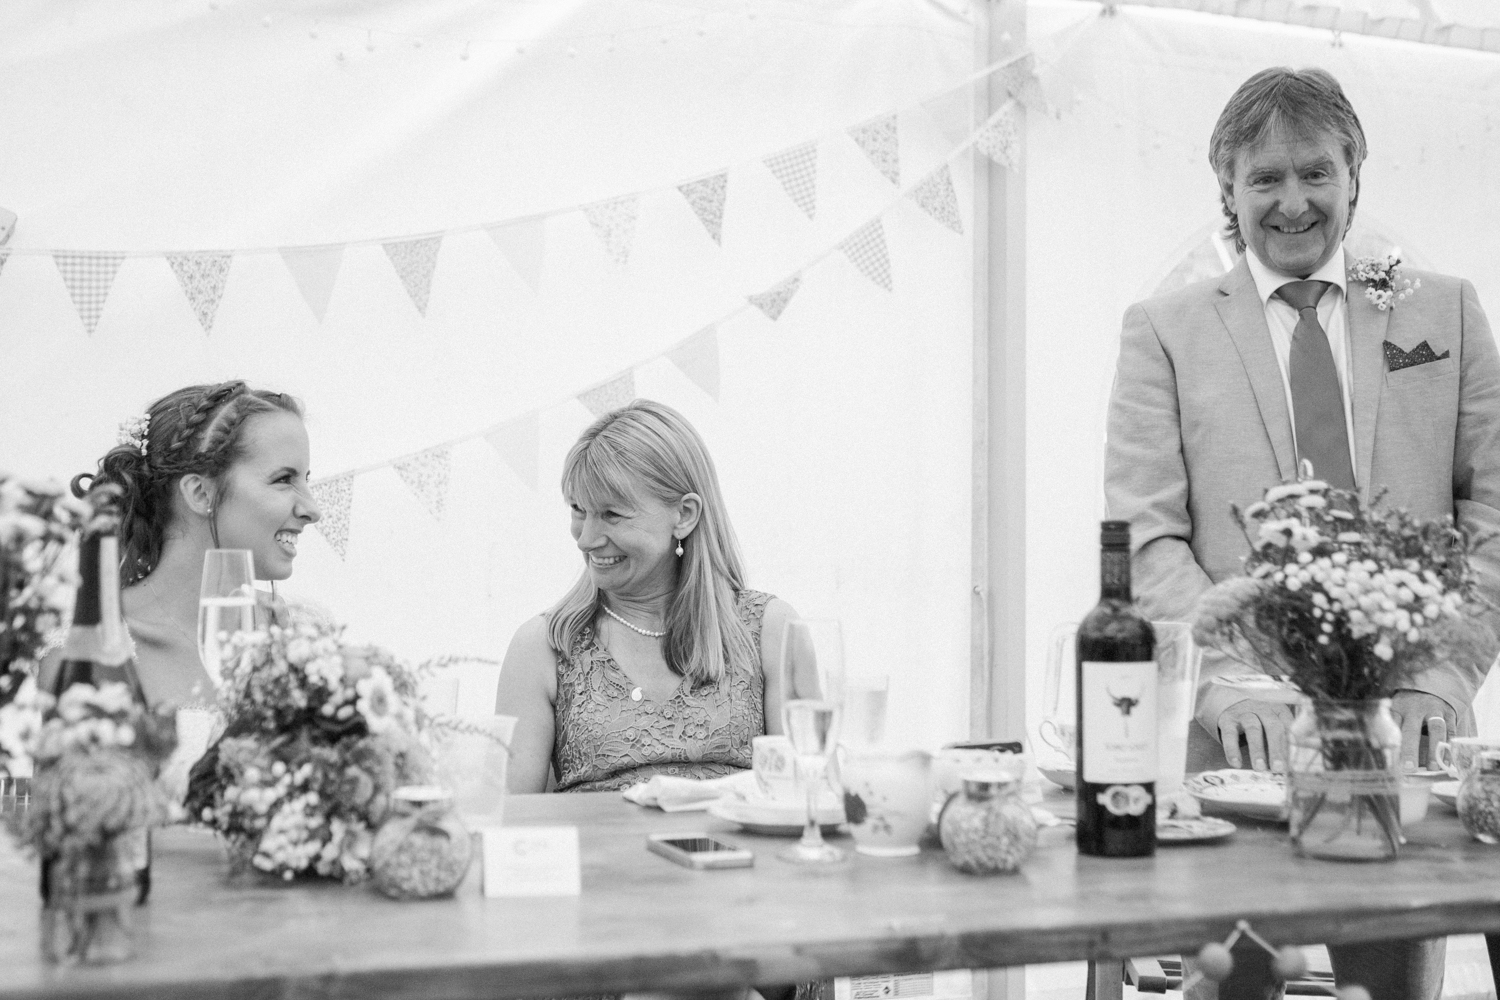 107Lotti & Dave marquee wedding Sophie Evans Photography West Midlands reportage wedding photography.jpg